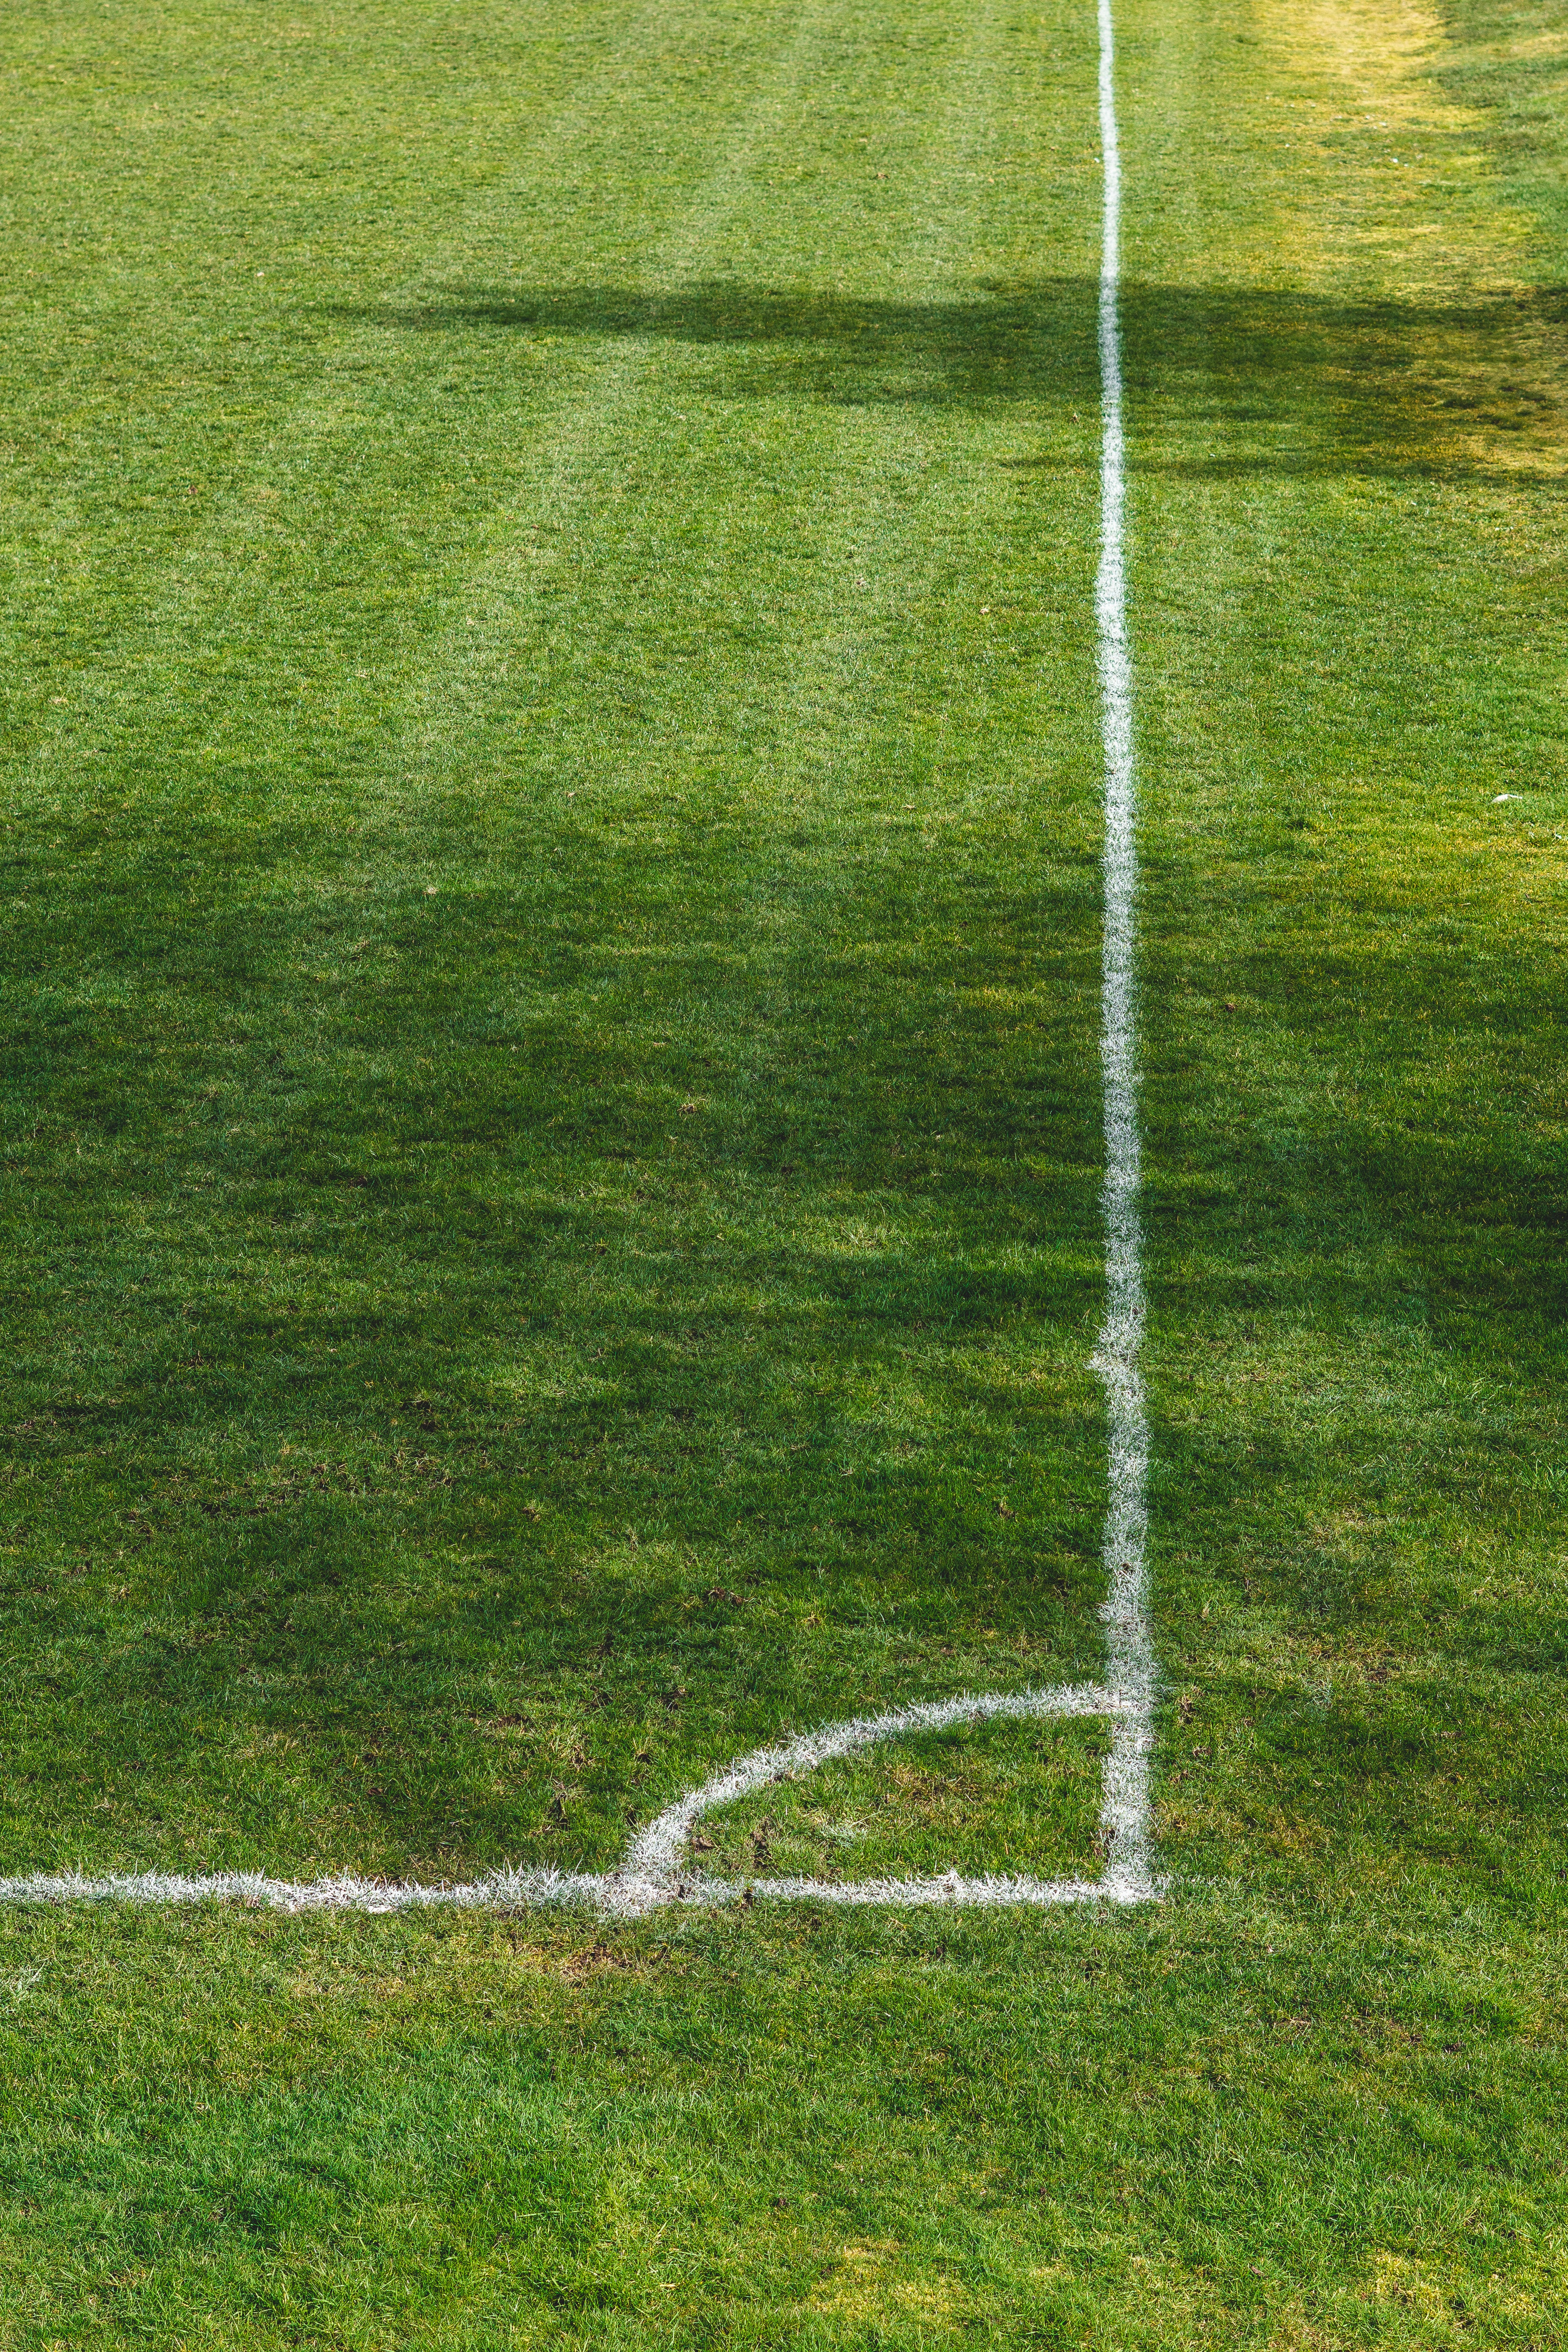 94531 download wallpaper Sports, Grass, Football, Markup, Stadium screensavers and pictures for free